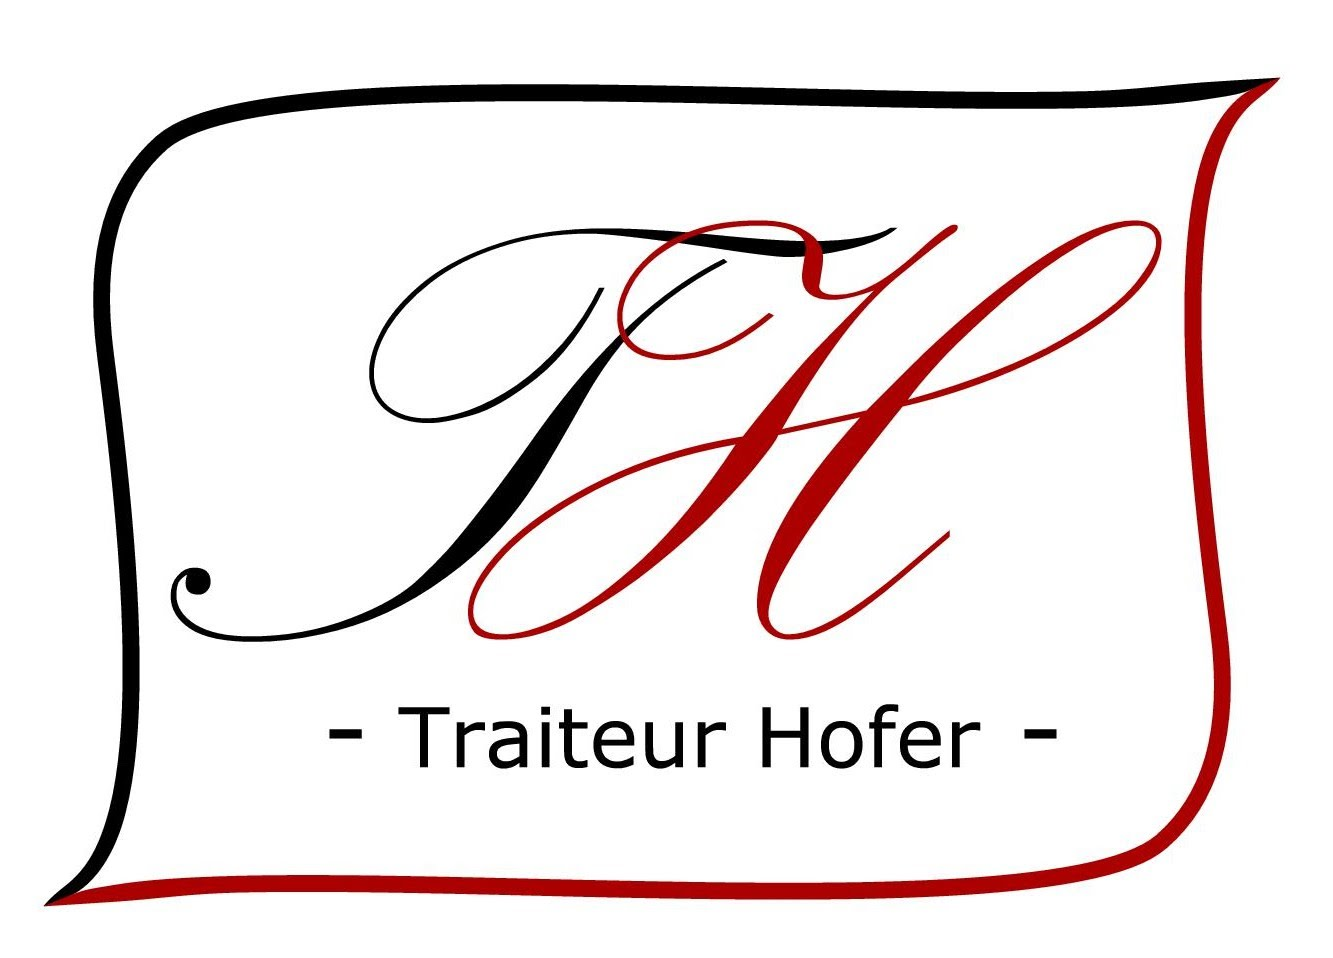 https://sites.google.com/a/cruseillestt.com/sdv/Home/Logo%20Traiteur%20Hofer.jpg?attredirects=0